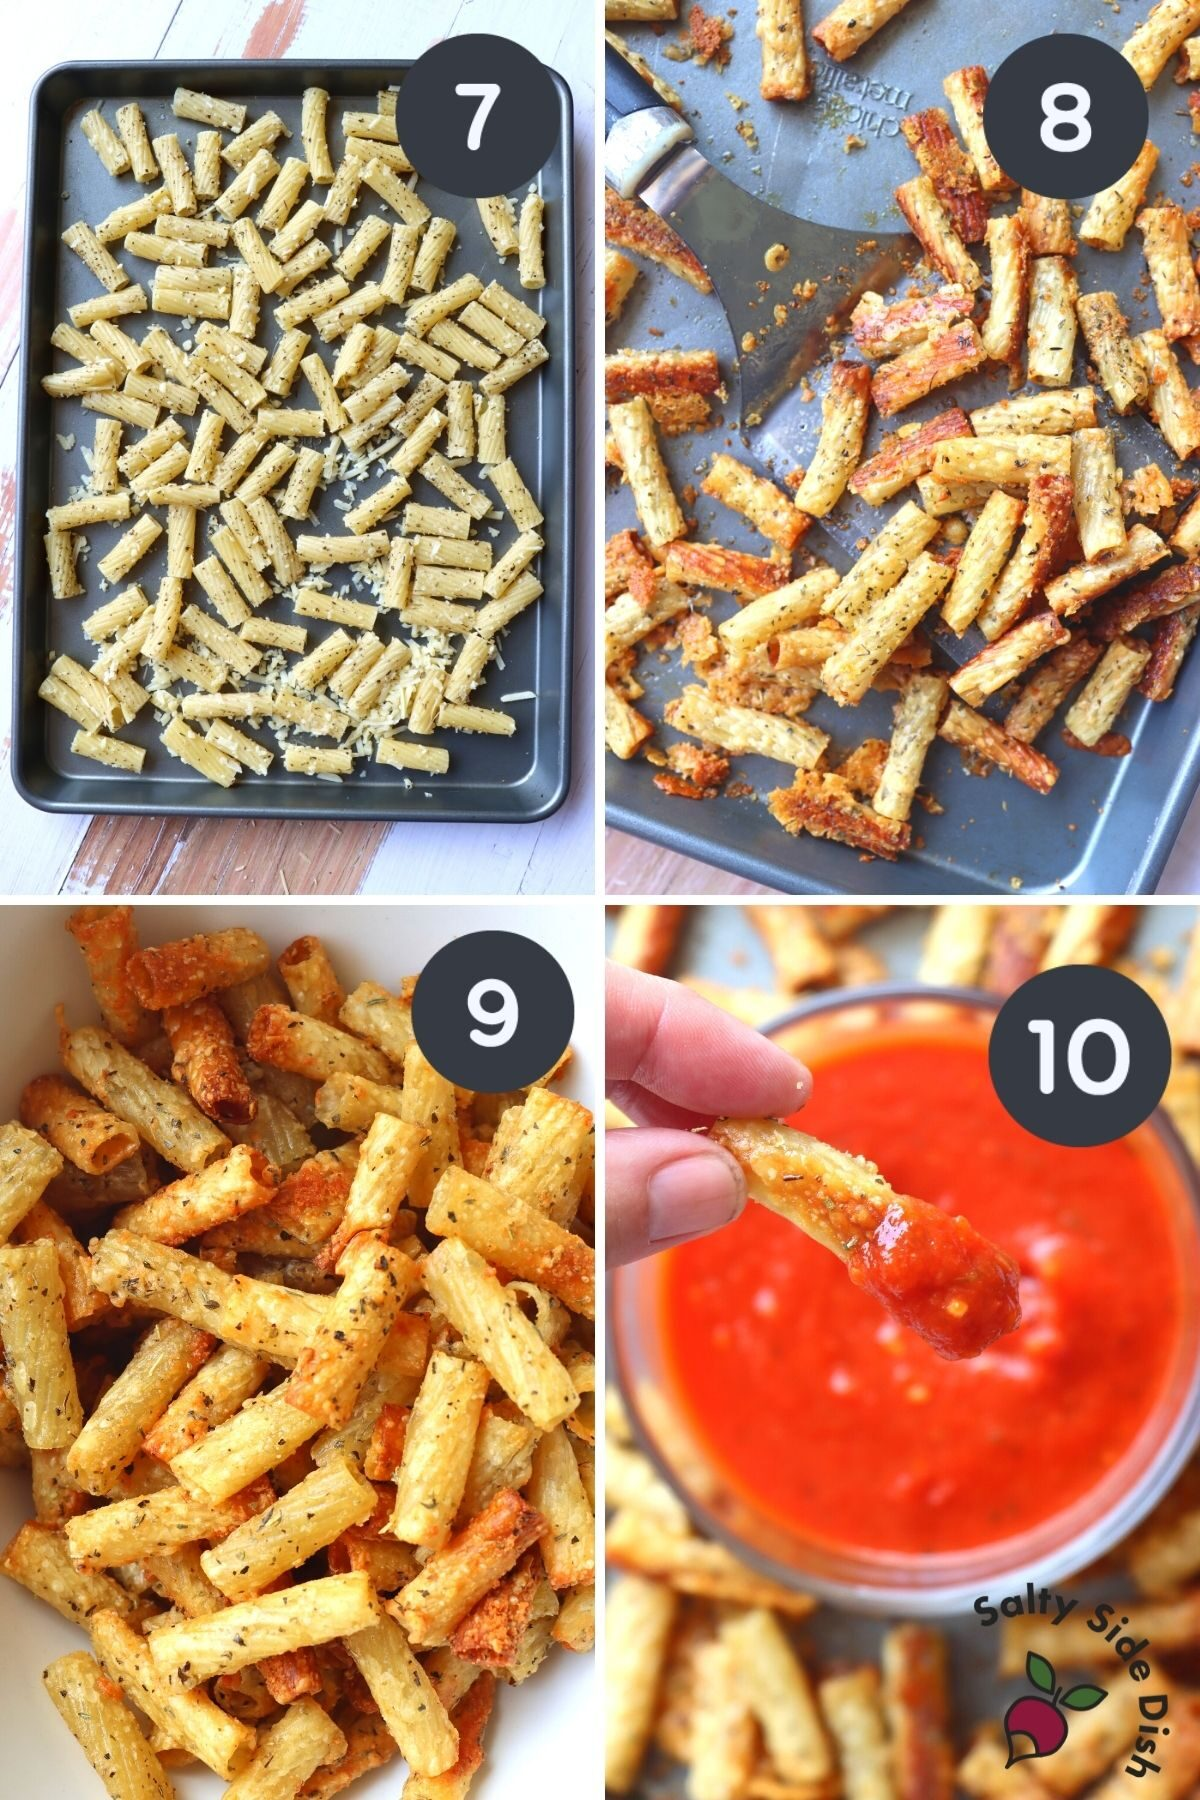 4 image college of baked pasta chips and dipping completed chips into sauce.